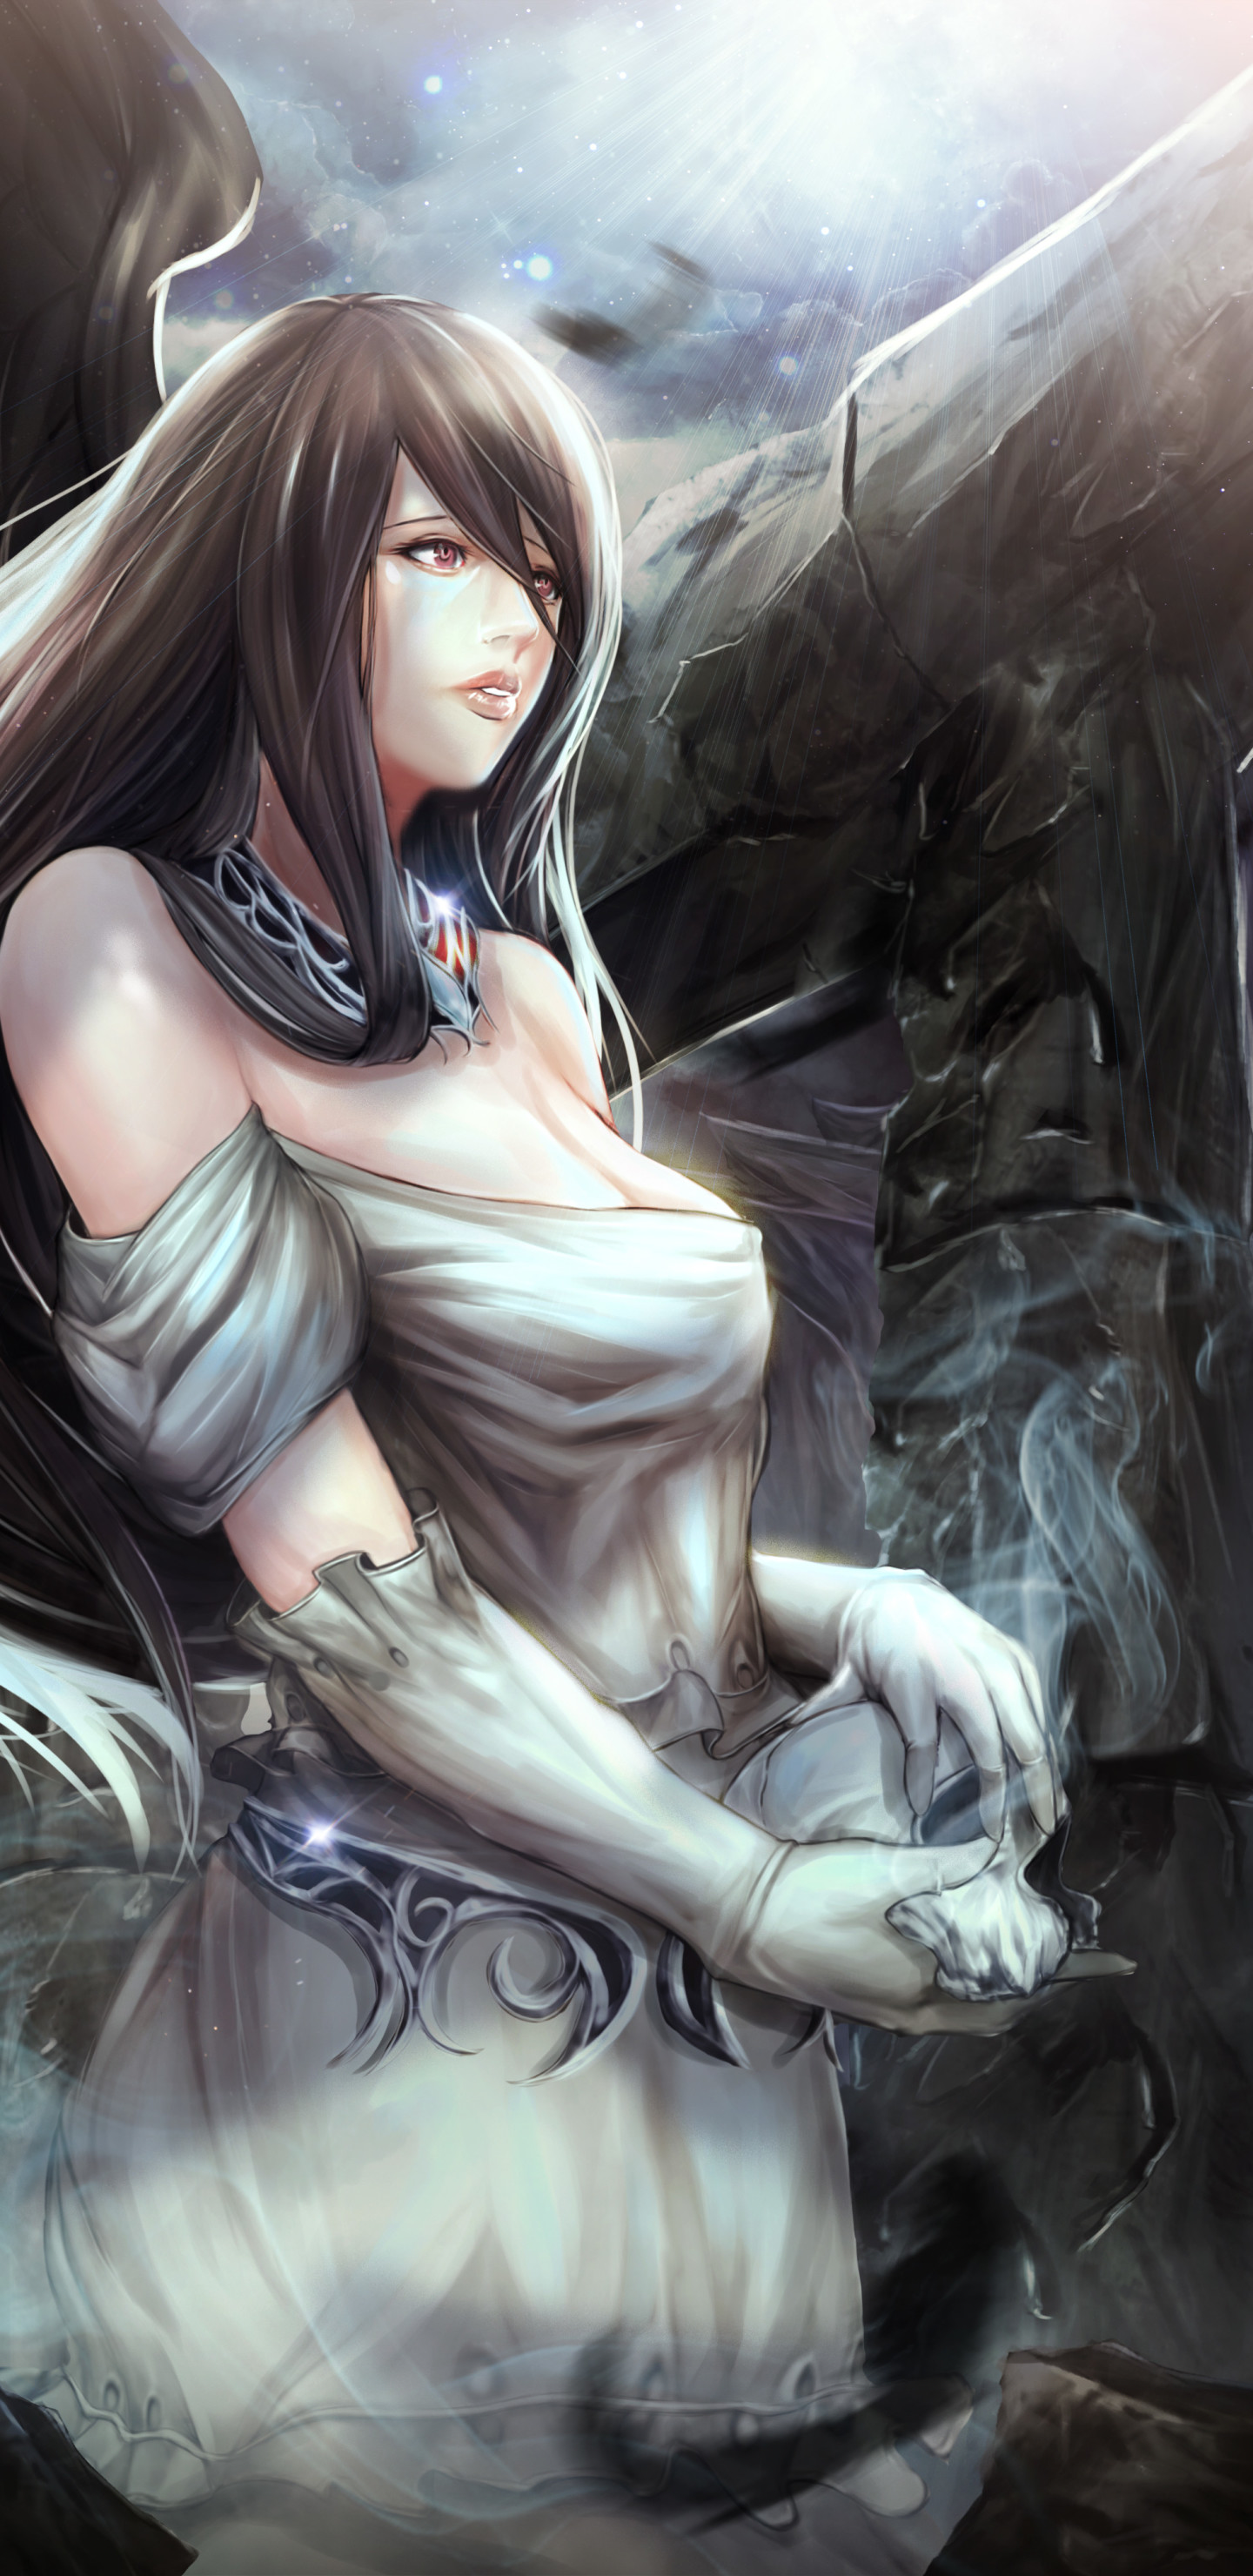 Res: 1440x2960, Albedo Anime / Overlord () Mobile Wallpaper